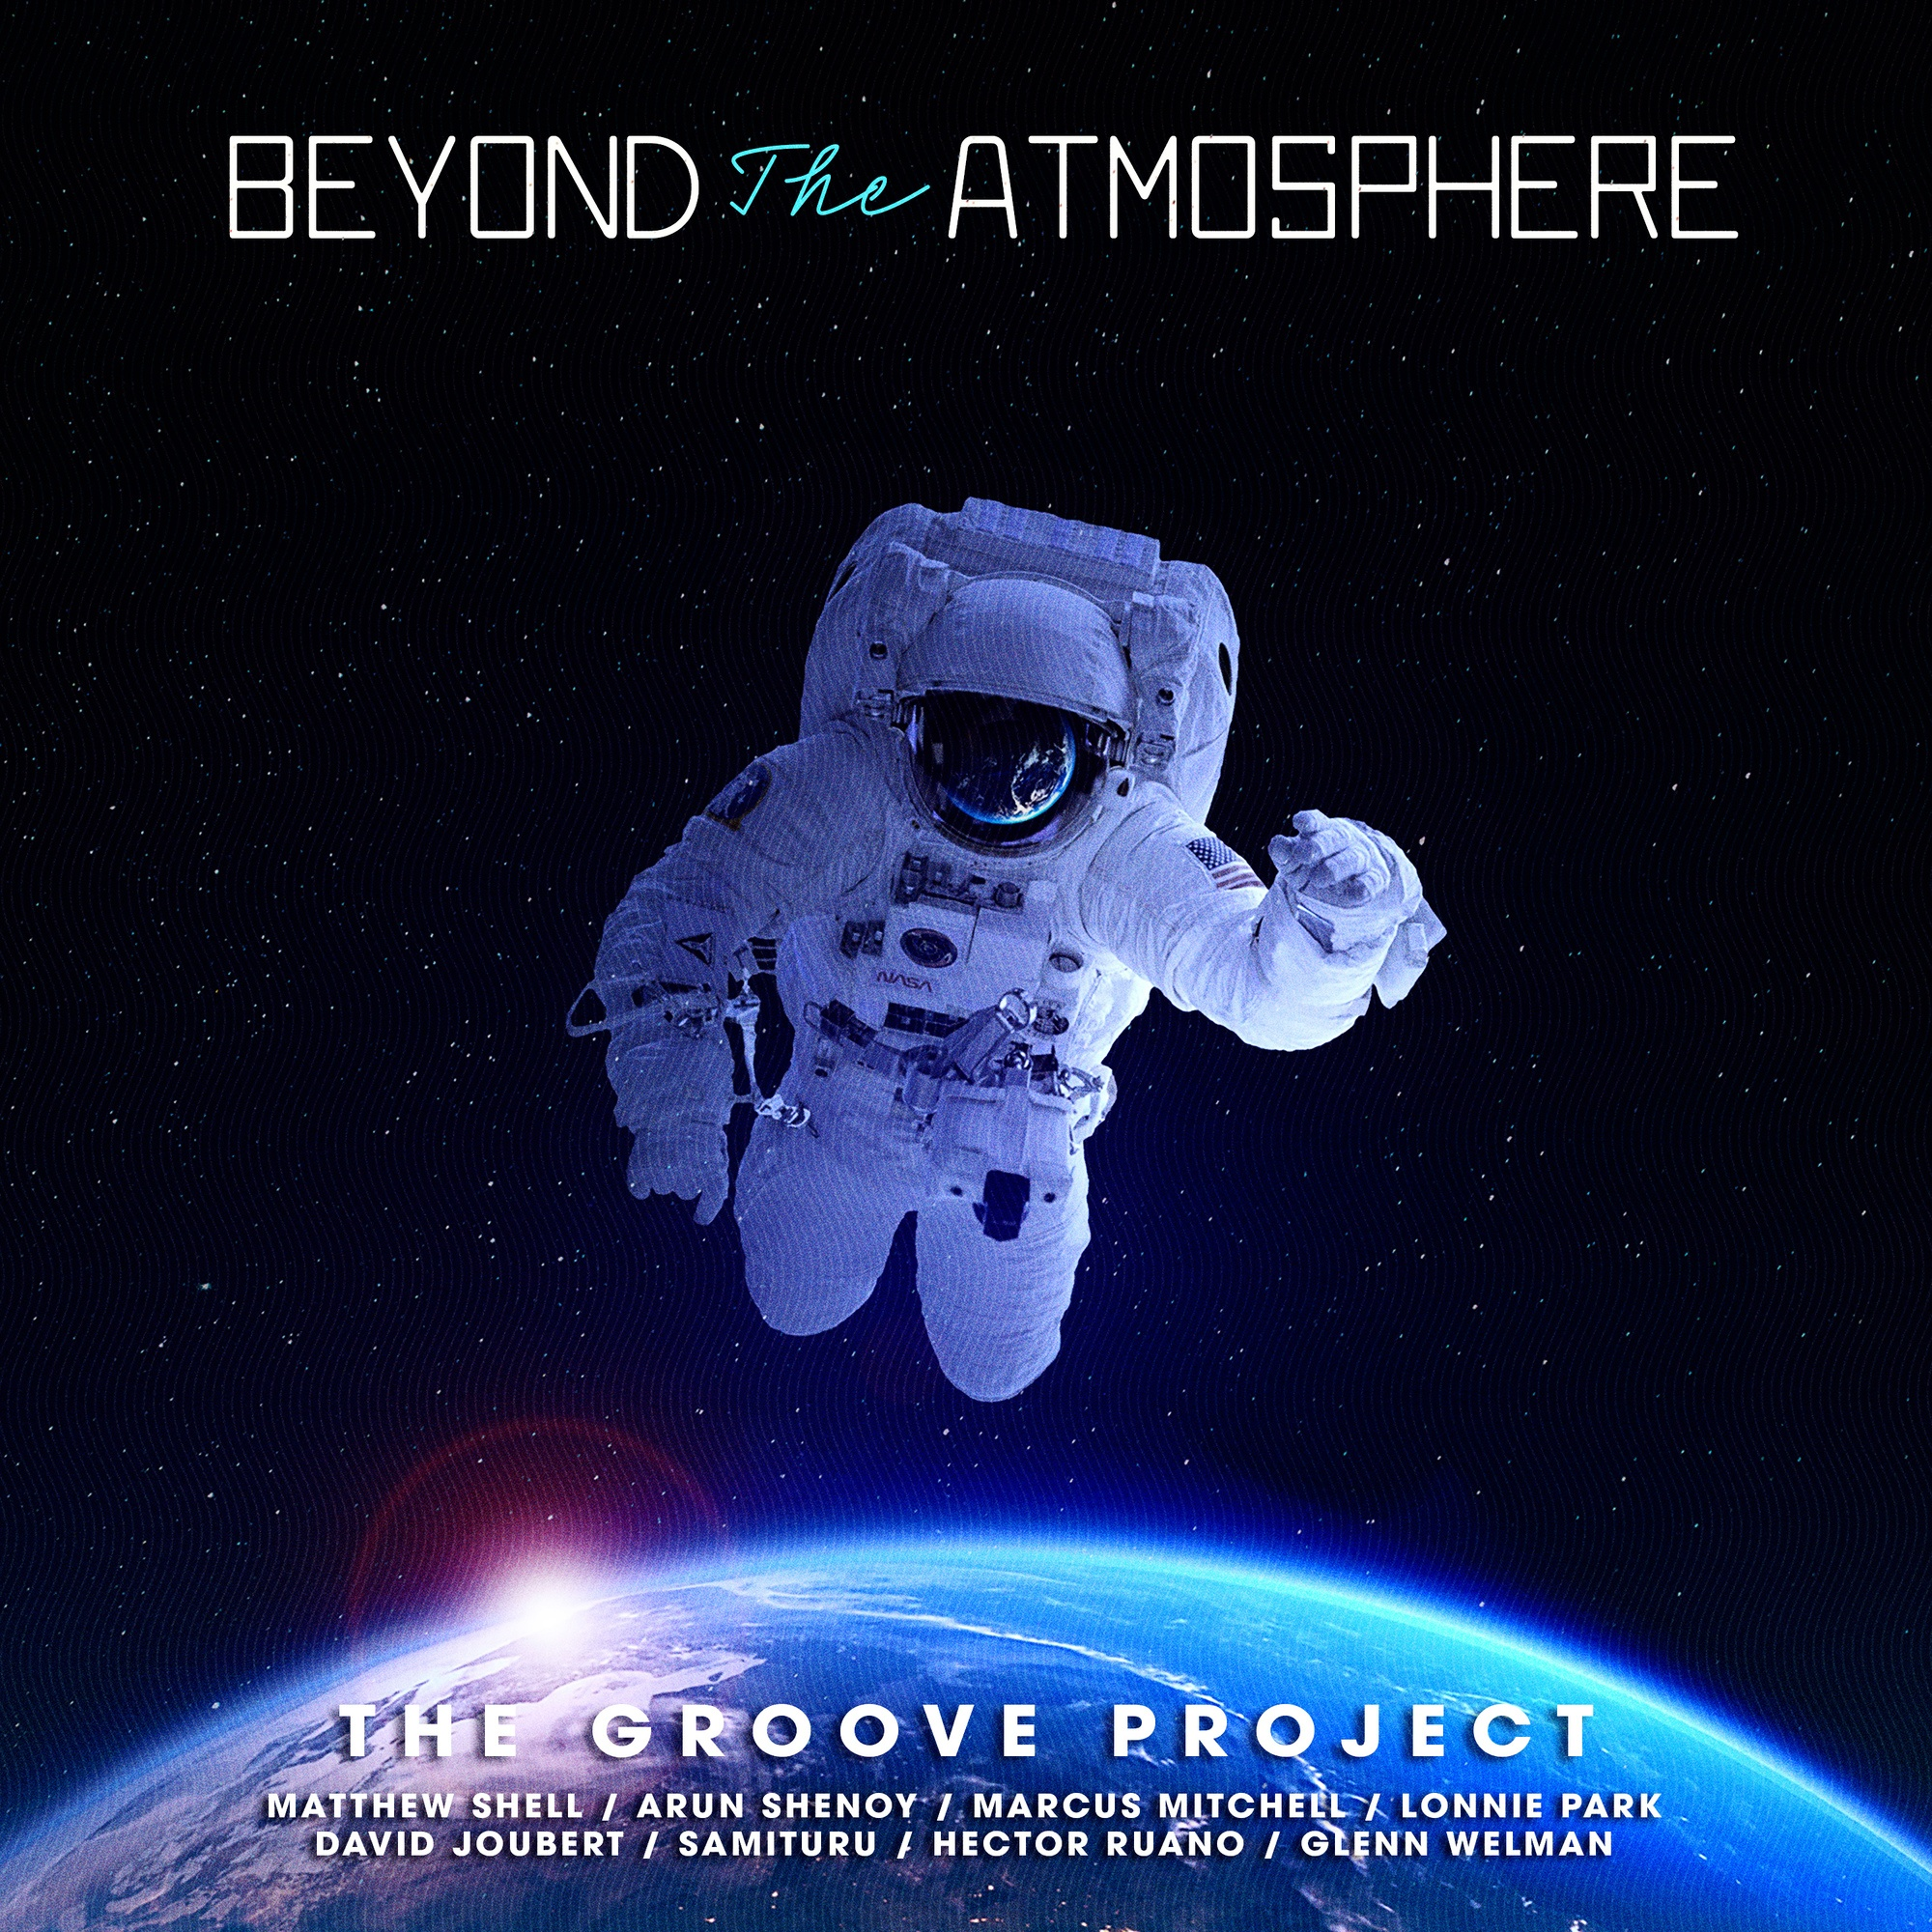 02. Beyond the Atmosphere